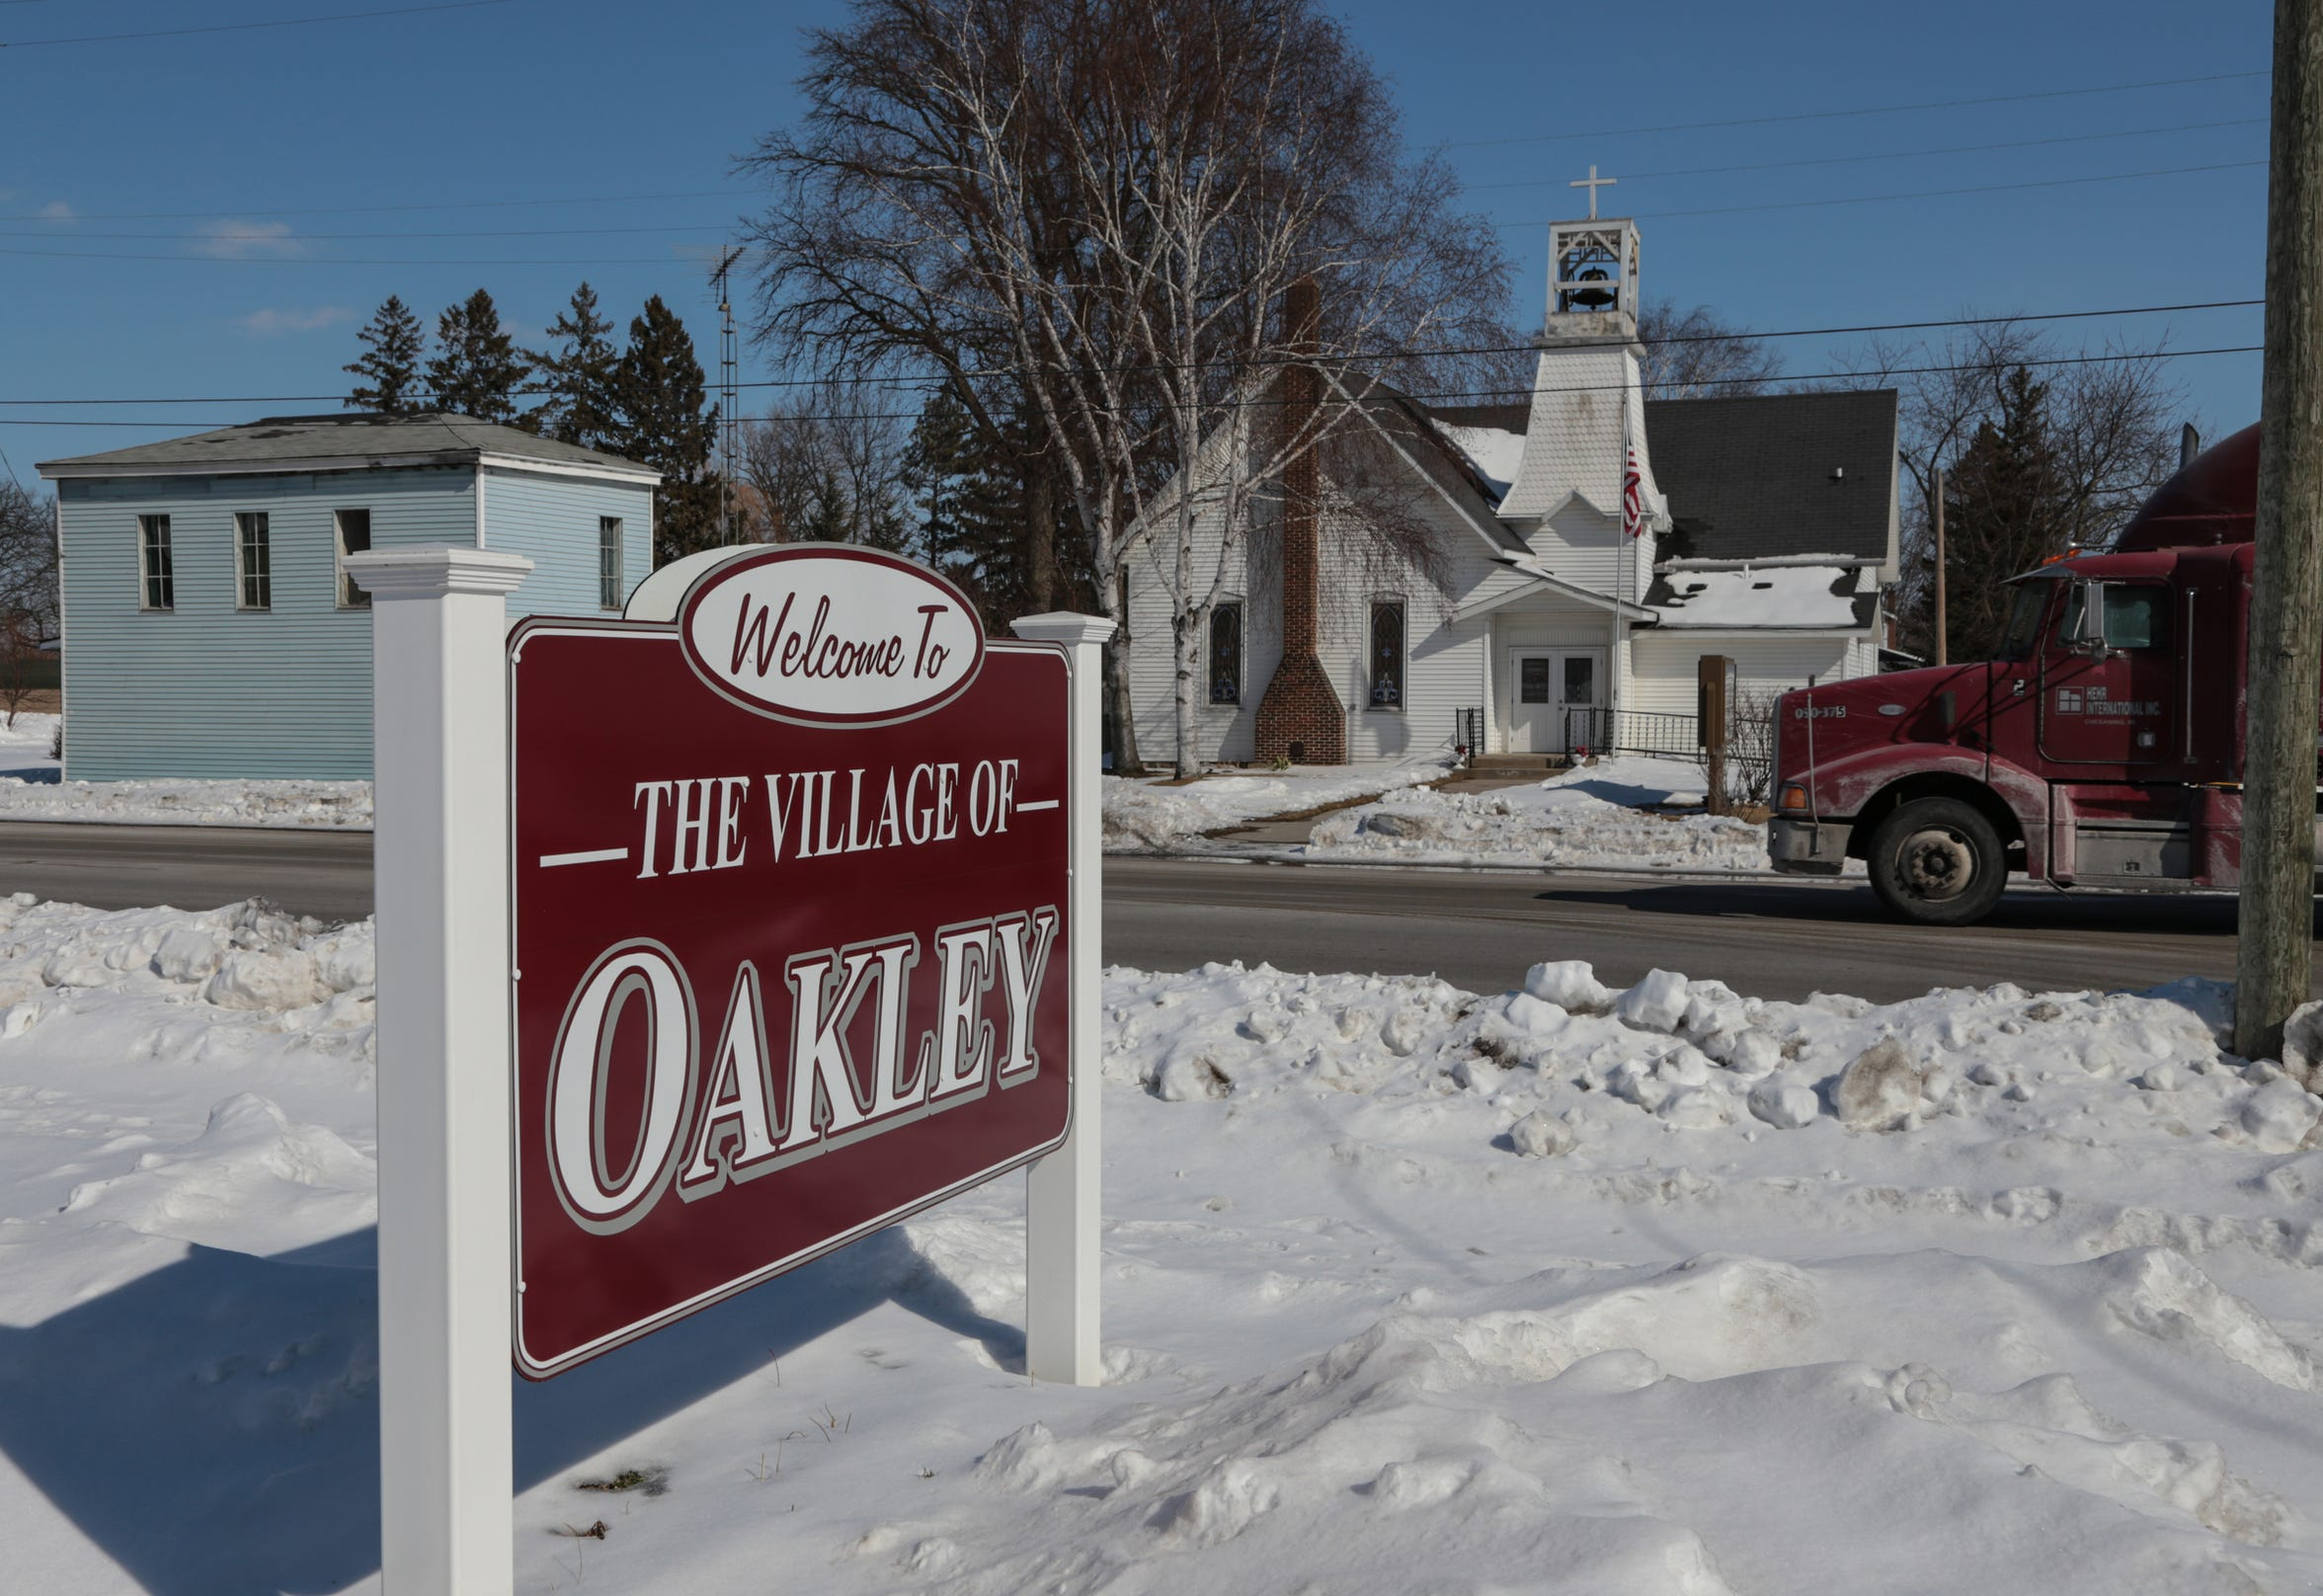 Traffic moves long Main Street in the village of Oakley, MI on Monday March 2, 2015. The small community once had nearly 150 reserve officers.